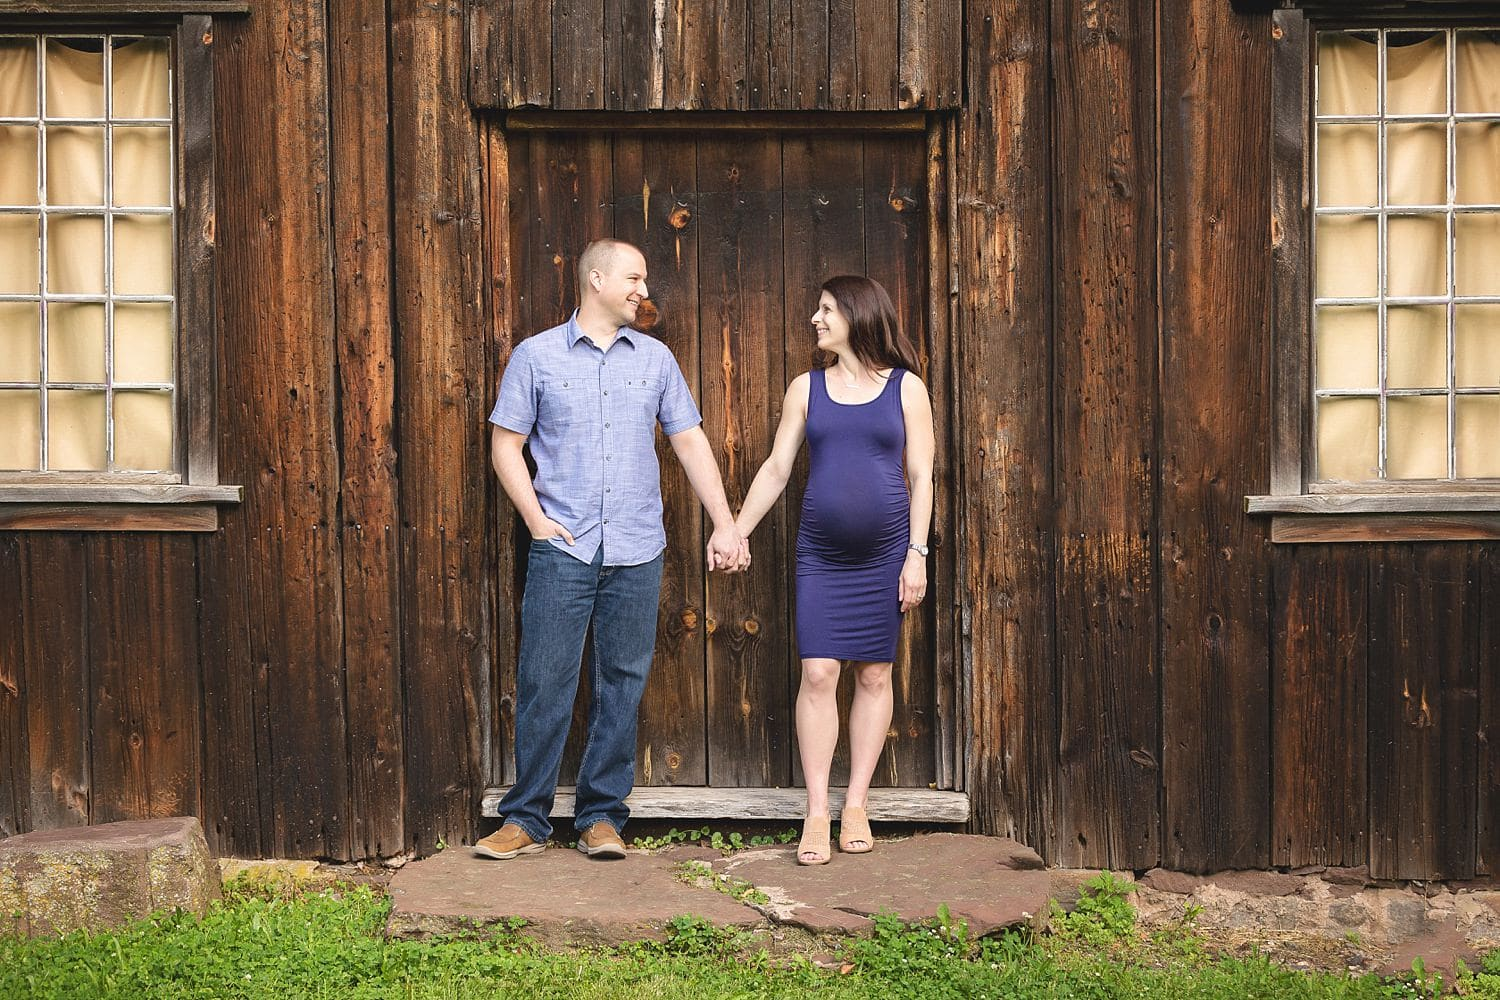 Lifestyle maternity photography by Newington, CT photographer The Flash Lady Photography